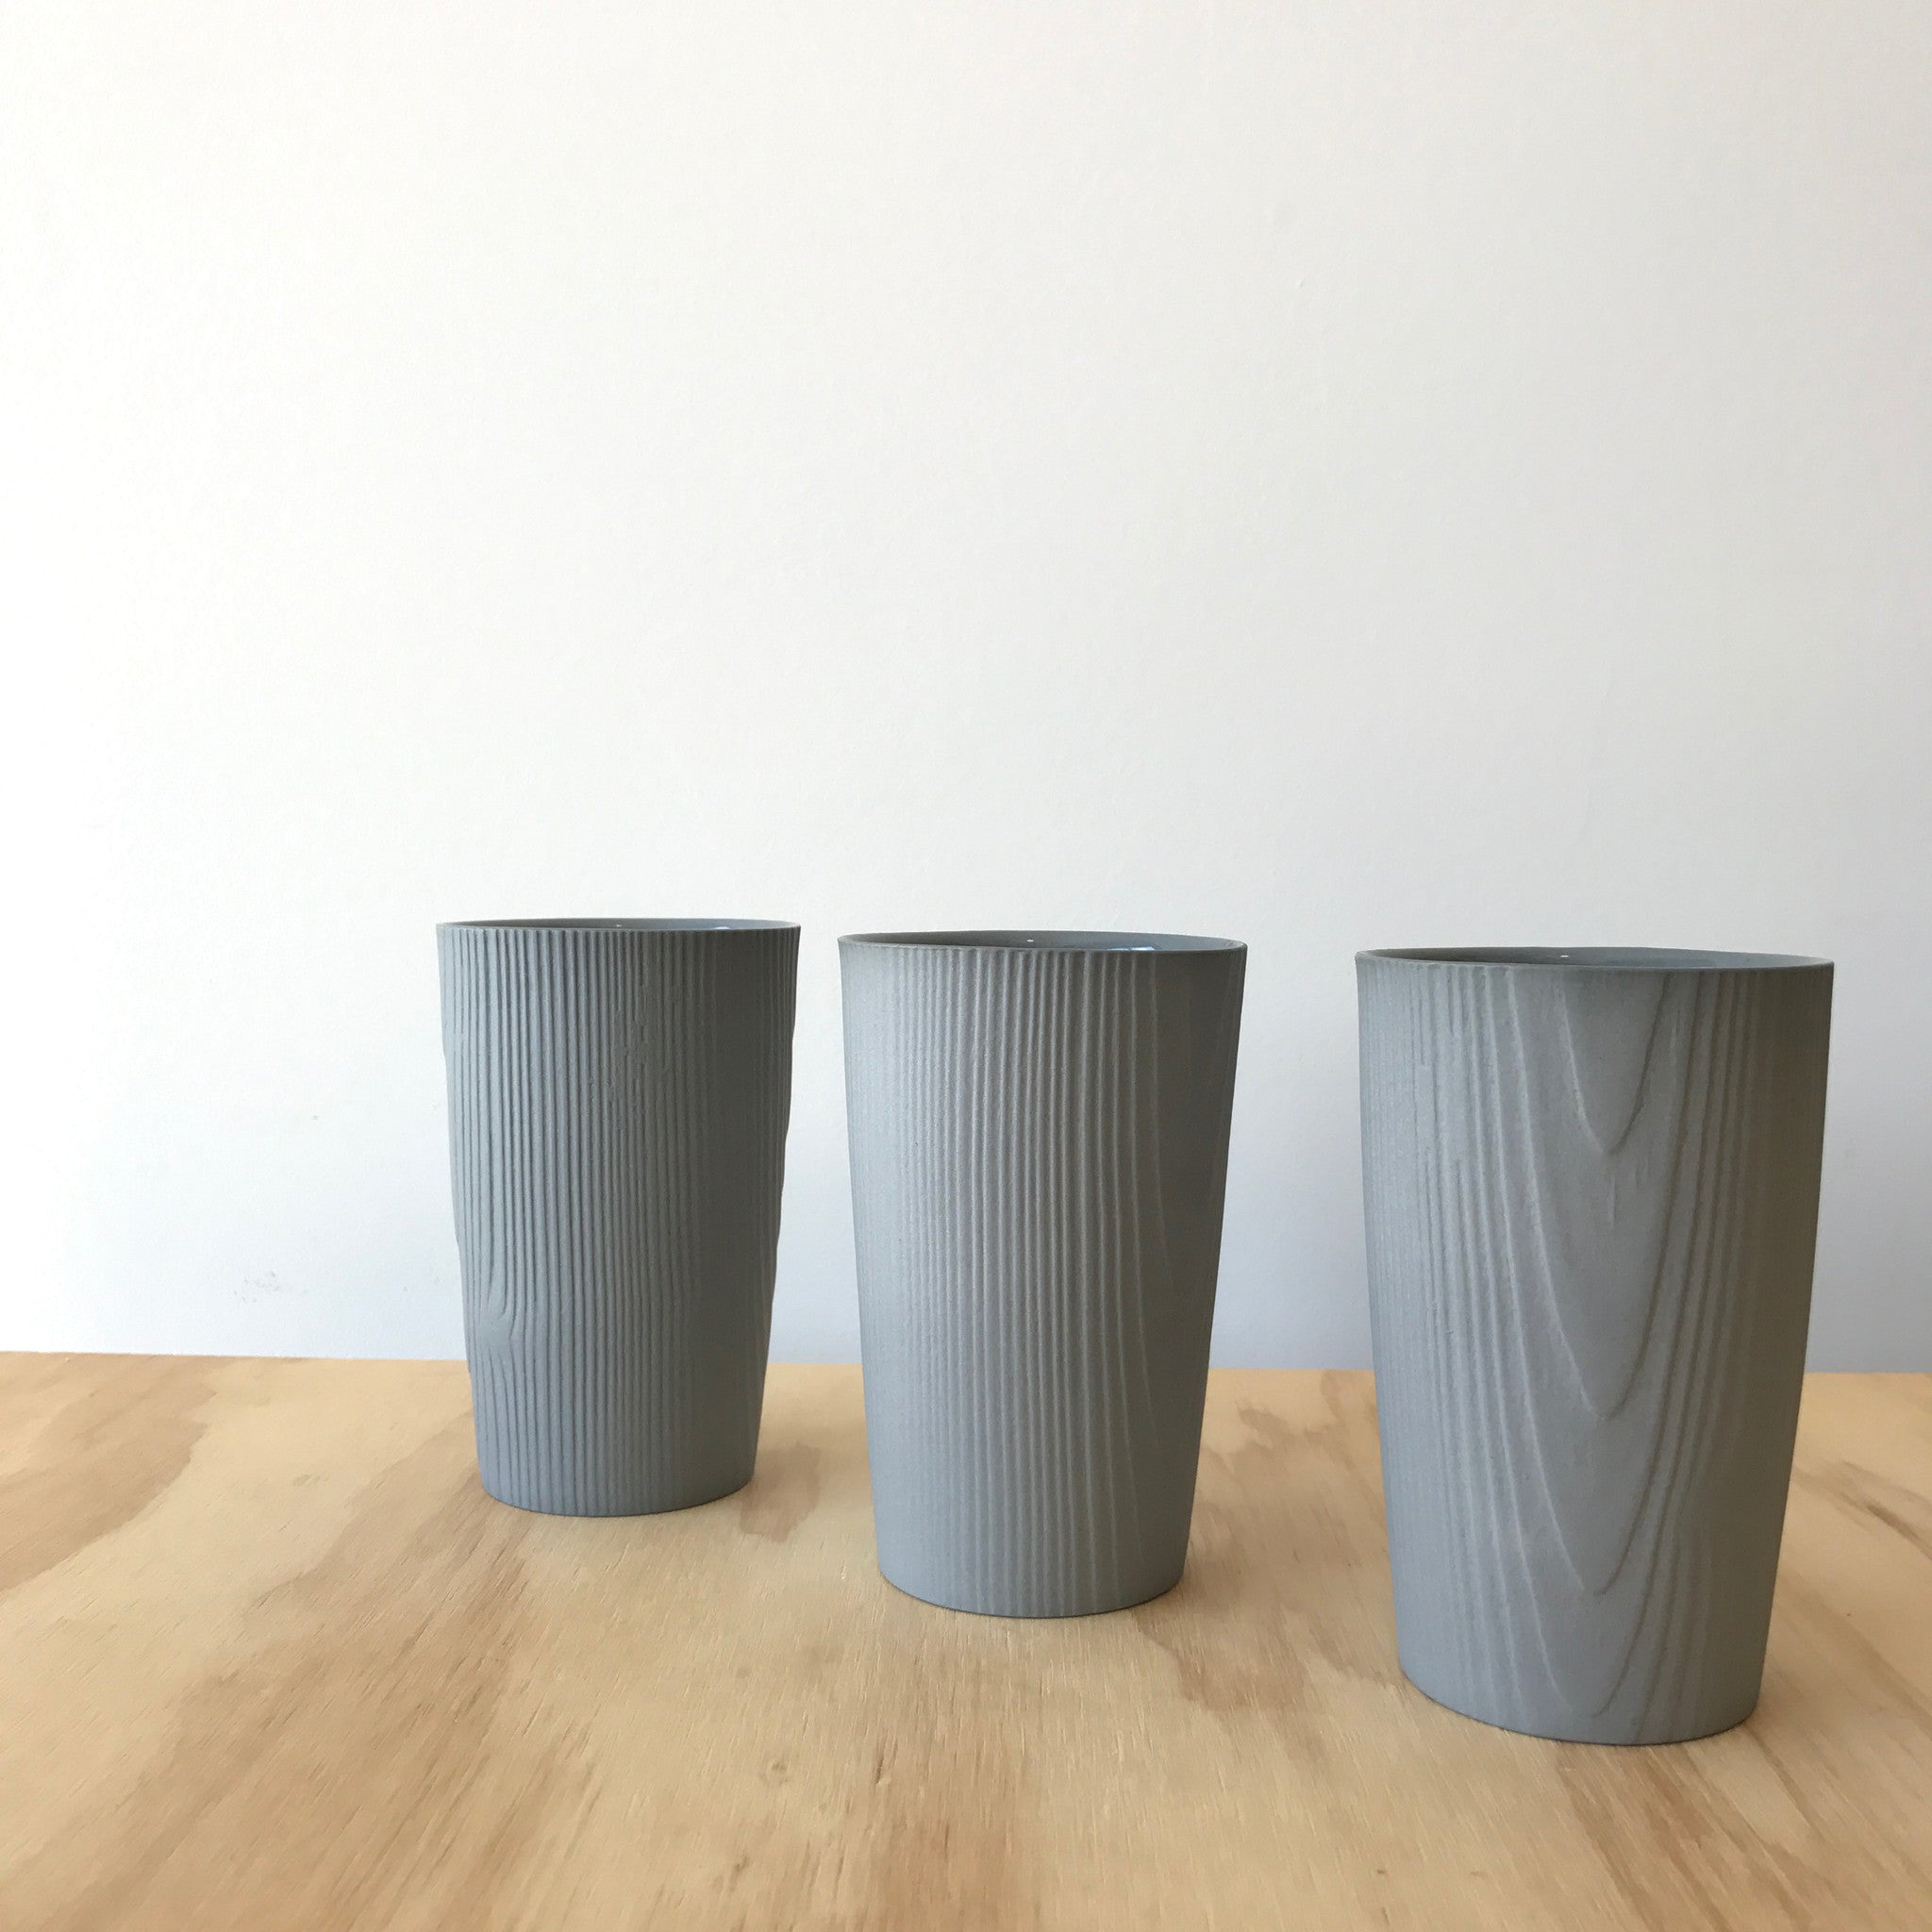 Porcelain Woodgrain Cup in Gray by Edgewood Made